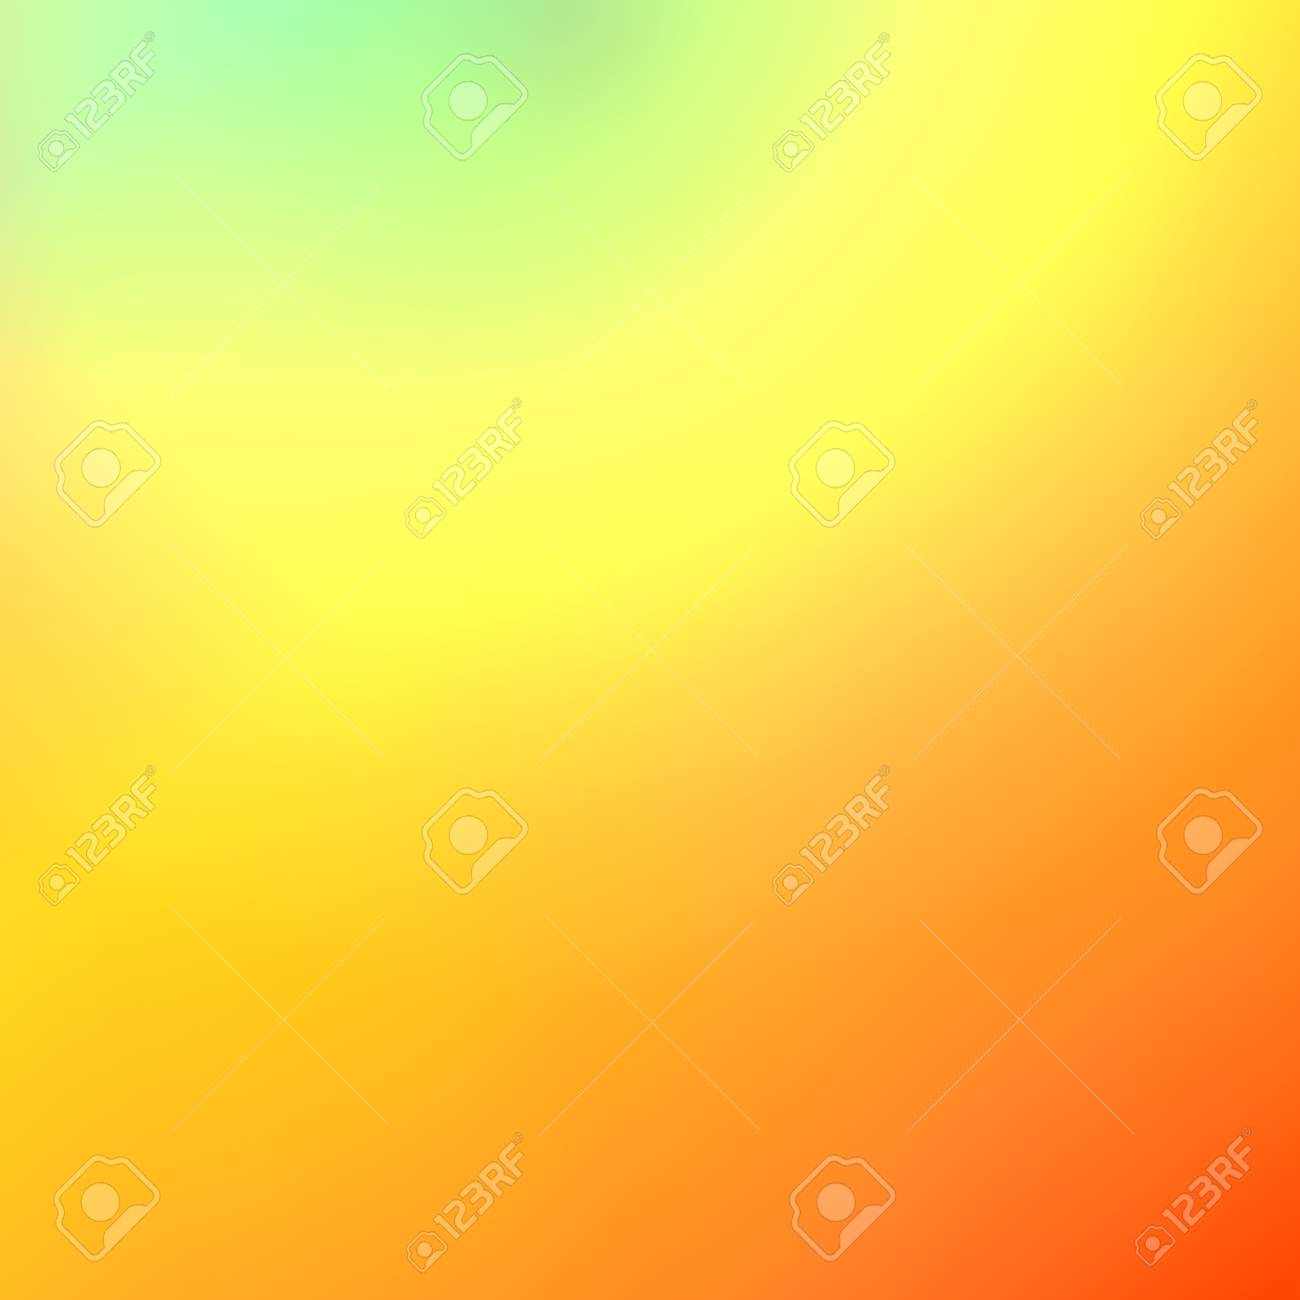 Green Yellow Orange Beautiful Gradient Background Design Graphic Stock Photo Picture And Royalty Free Image Image 81953772